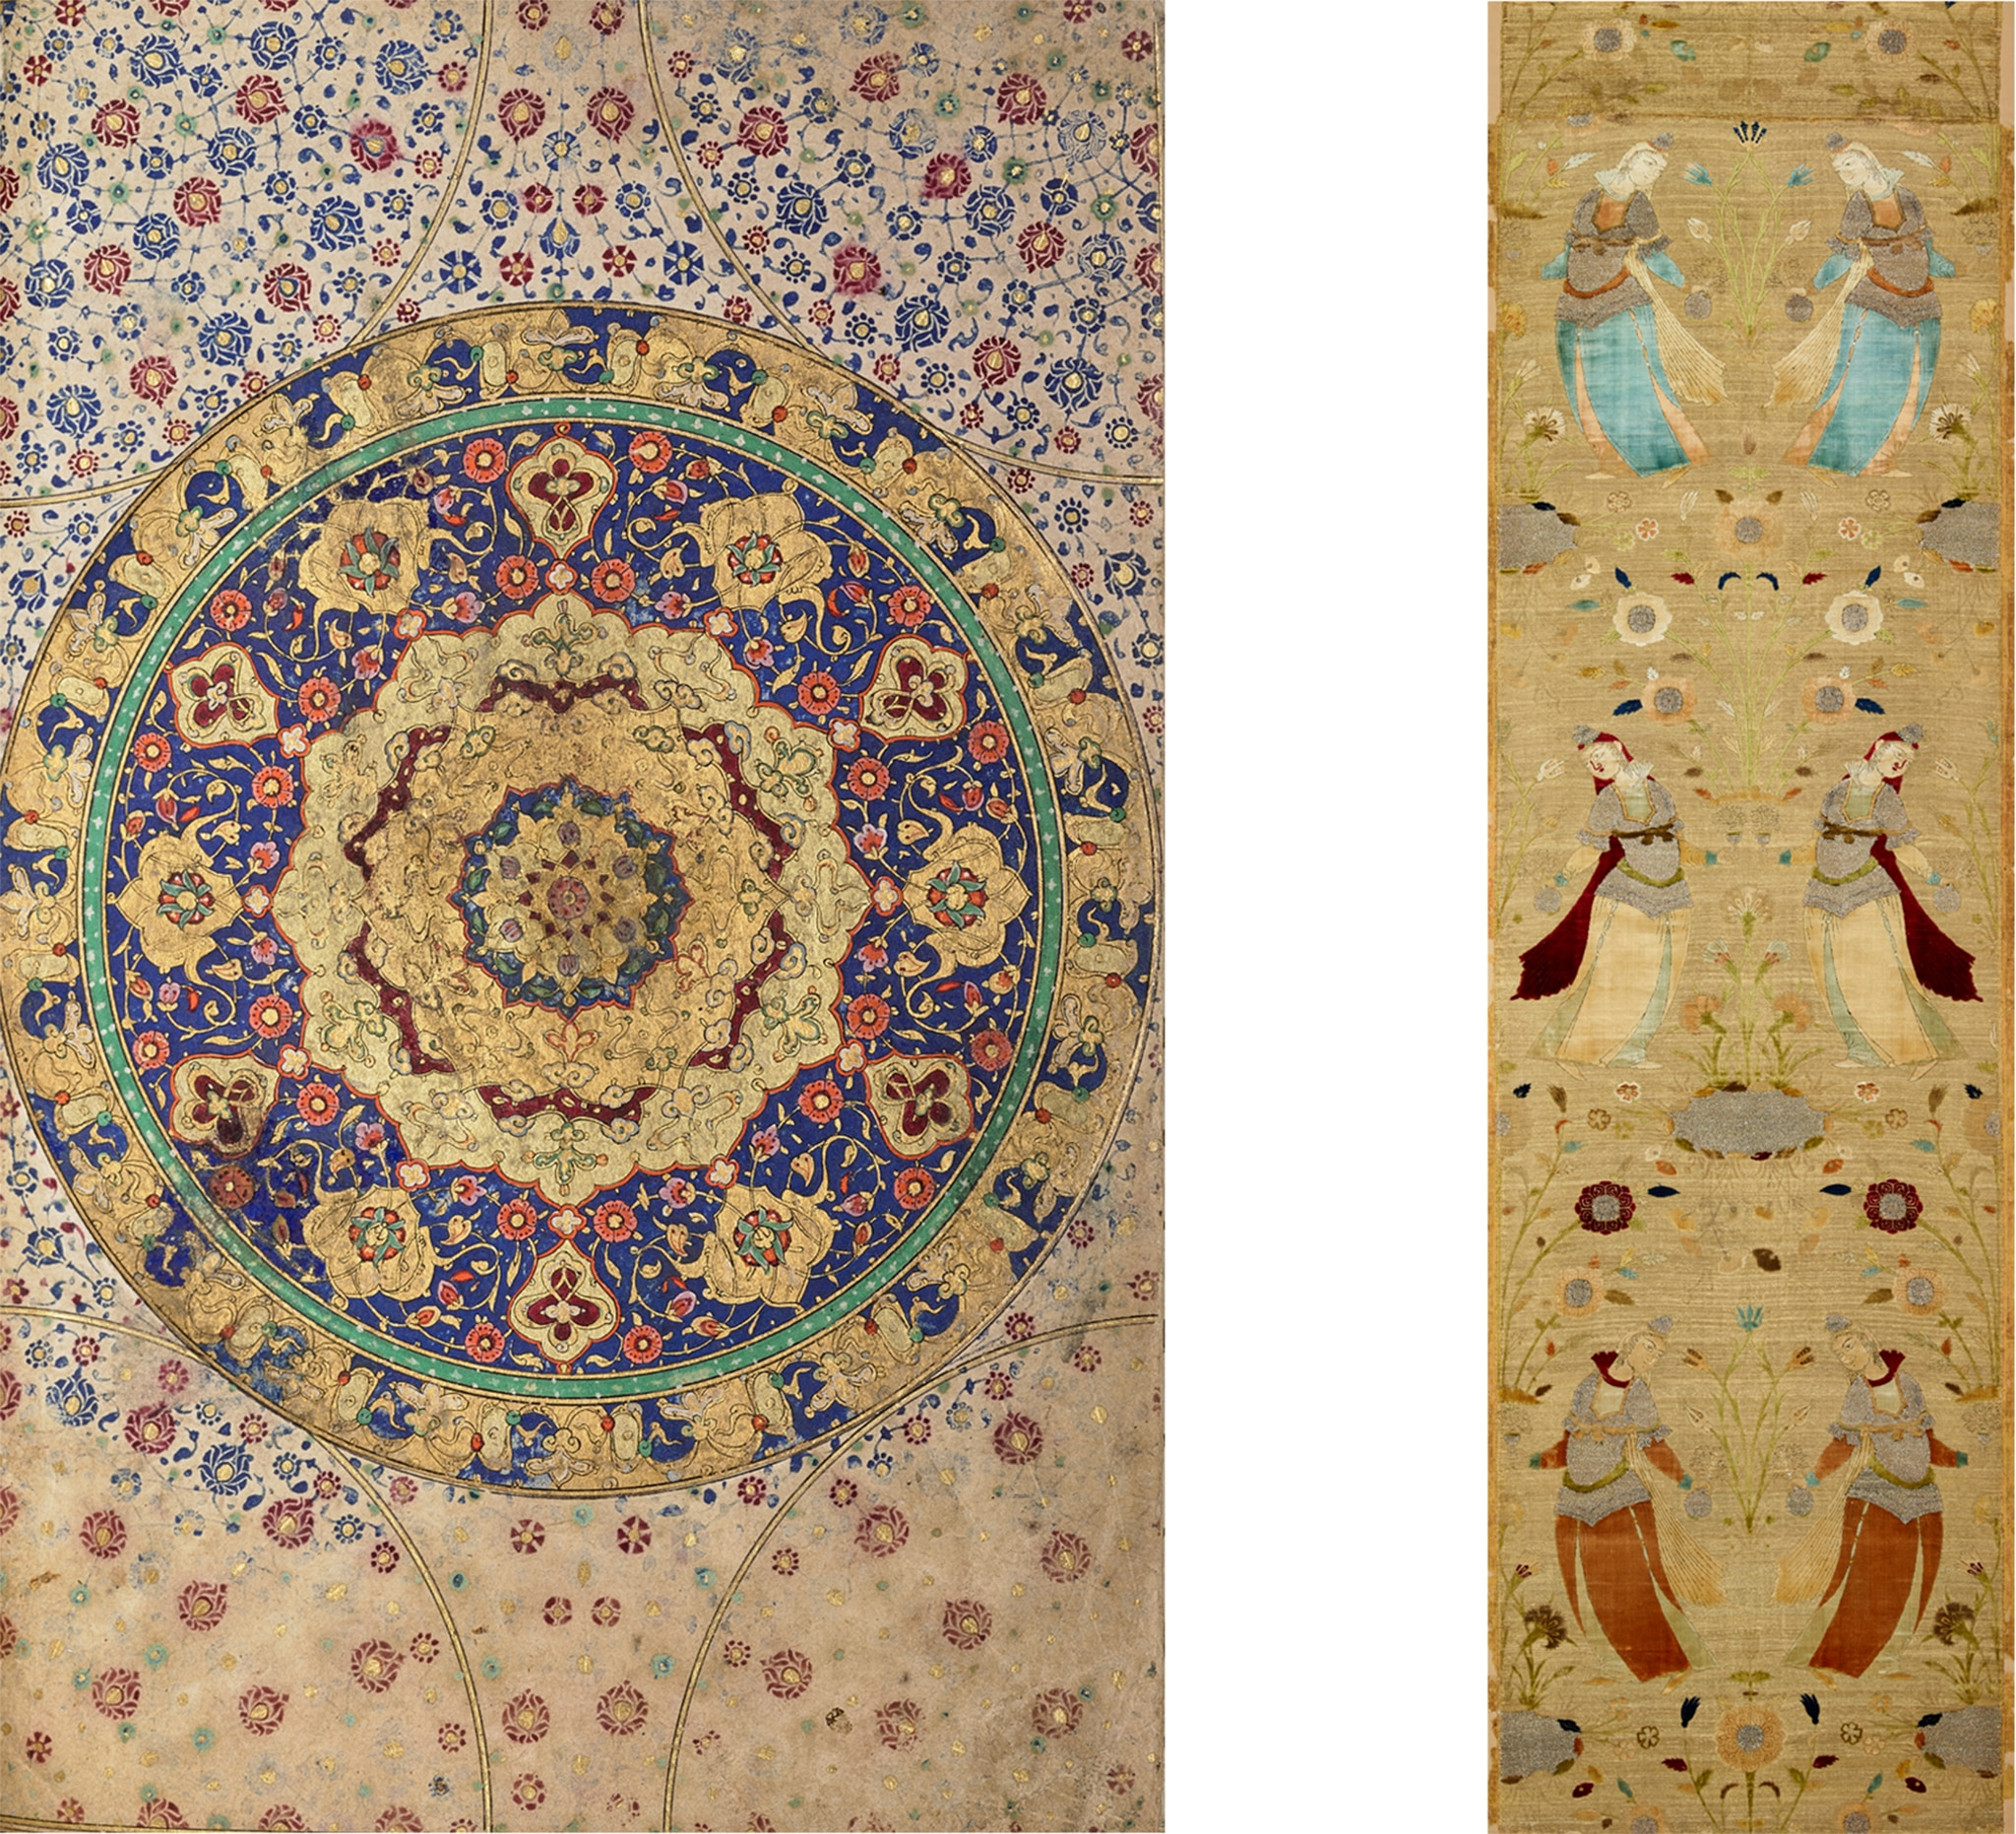 At left, circular multicolored patterns; at right, pairs of figures against floral background (The Keir Collection of Islamic Art/Dallas Museum of Art)